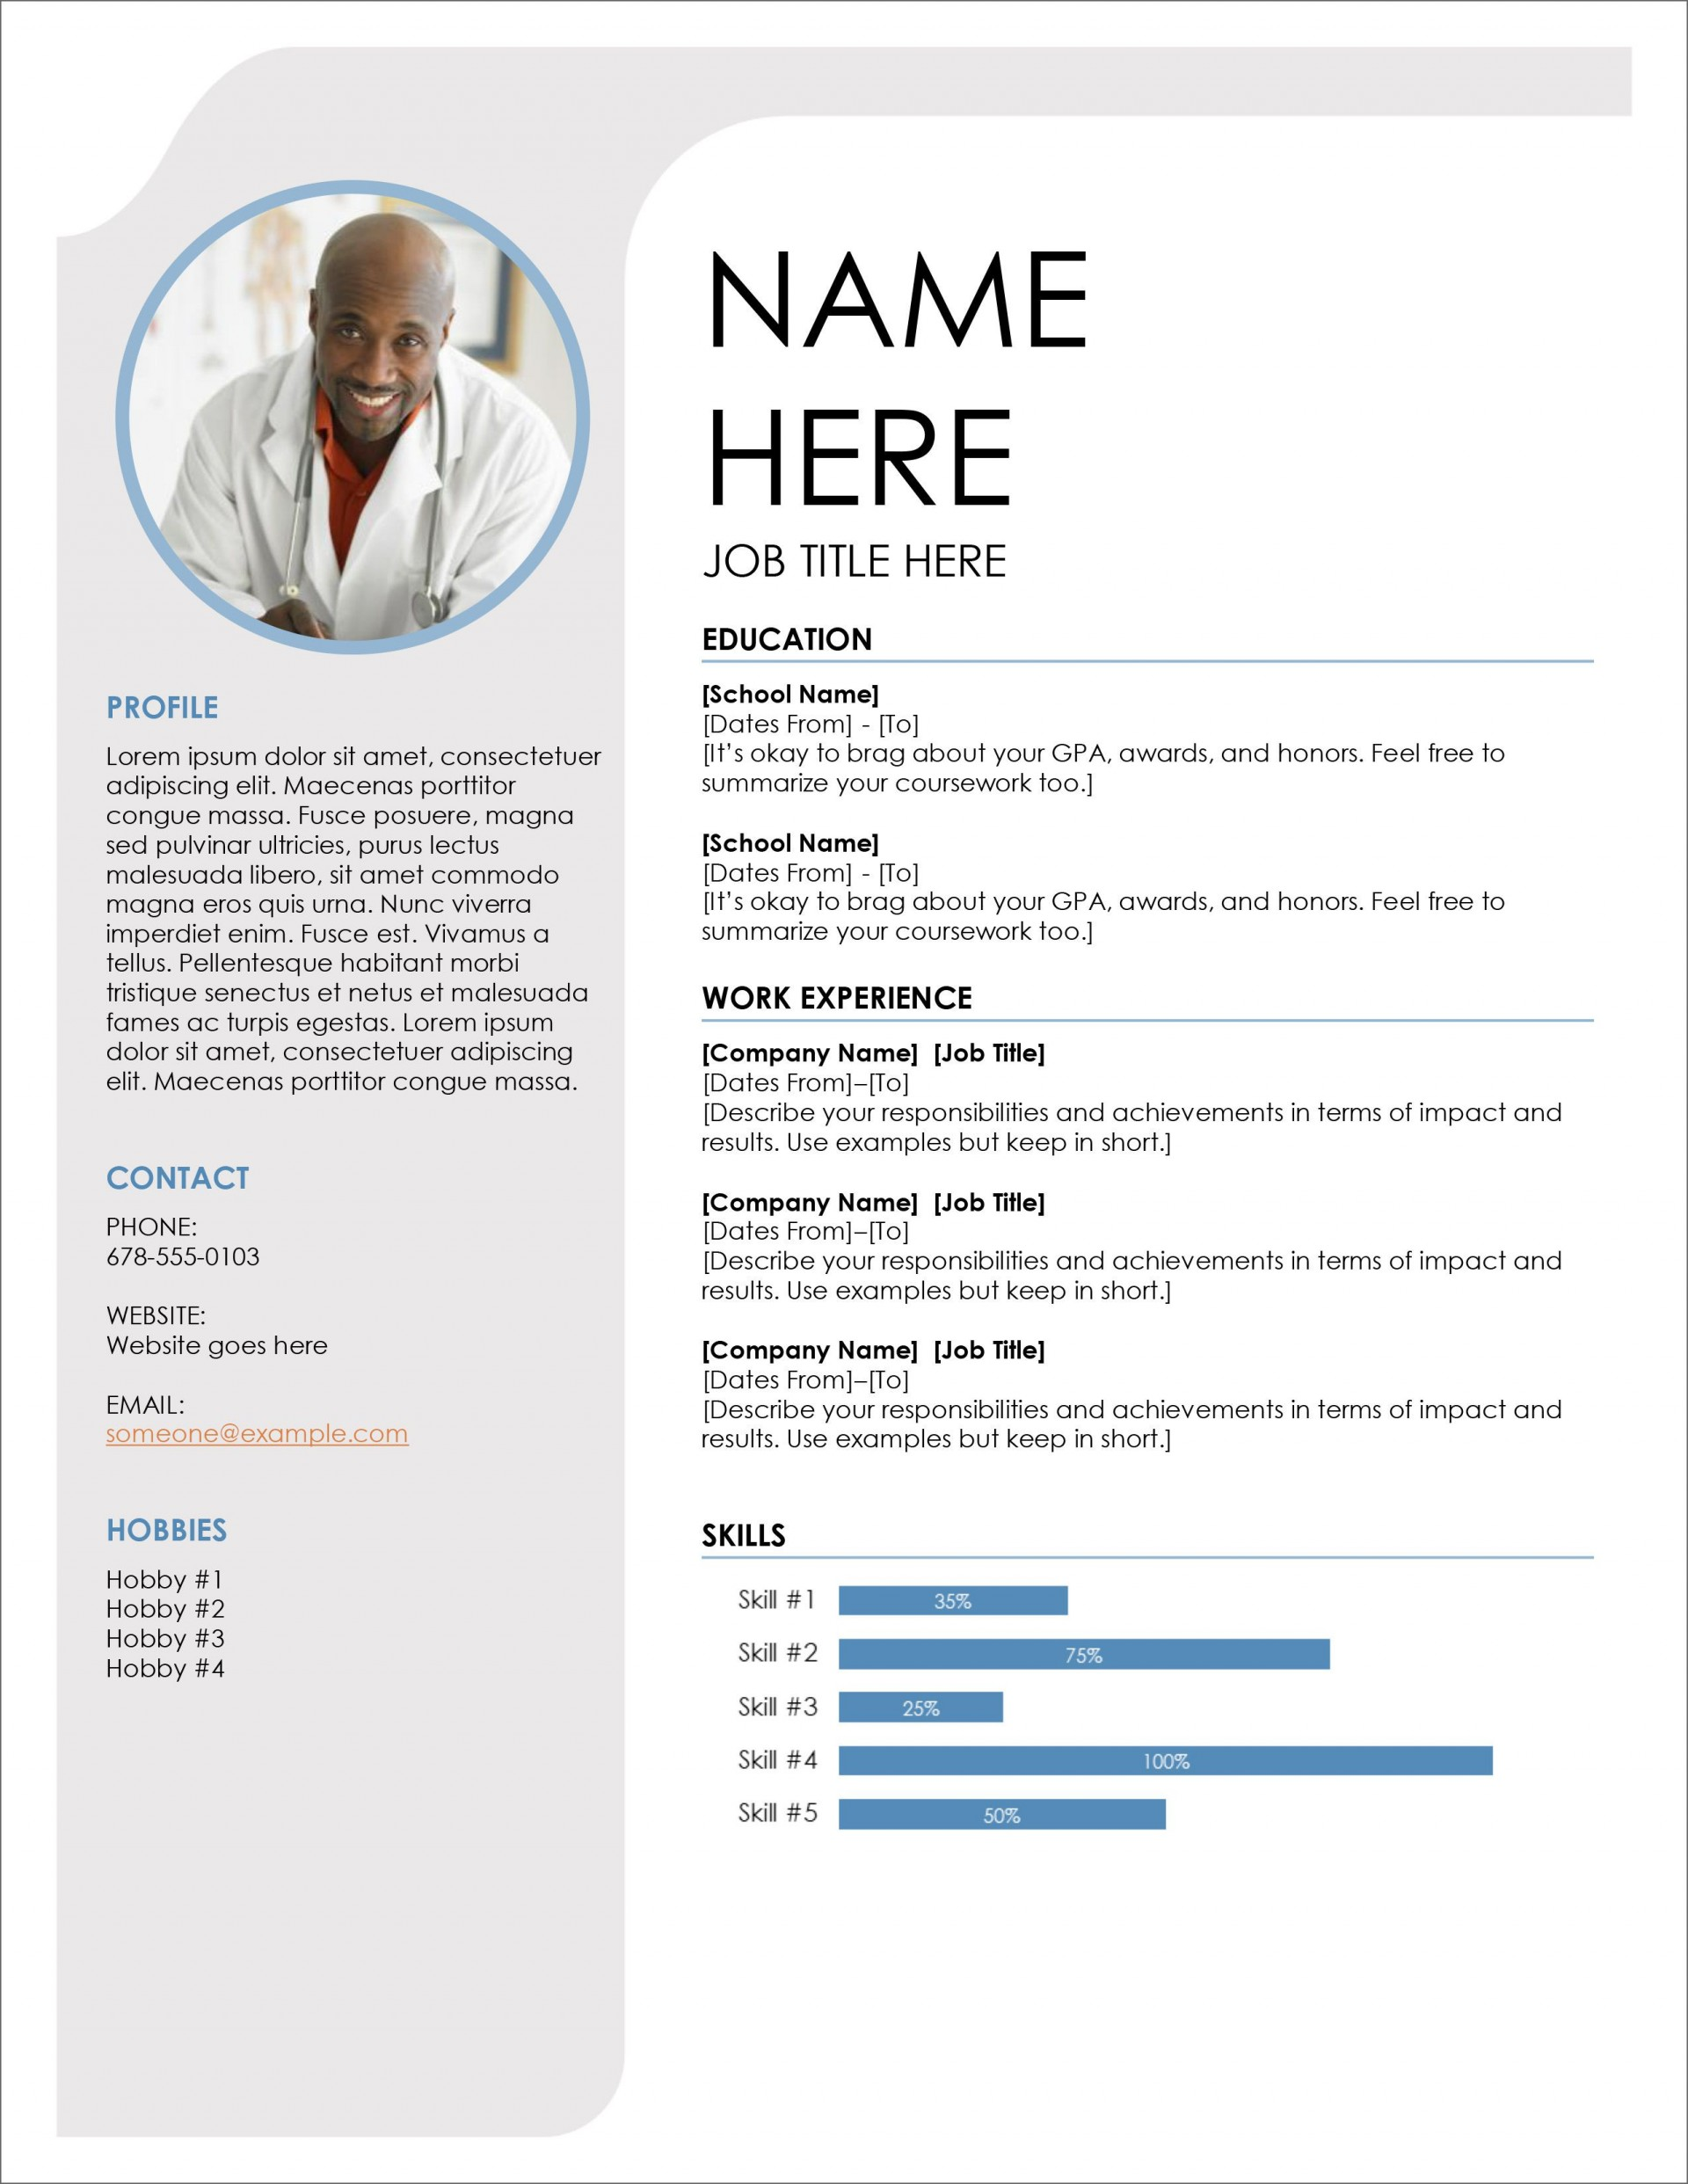 006 Stunning Download Template For Word Concept  Wordpres Free Resume 2007 Addres Label1920